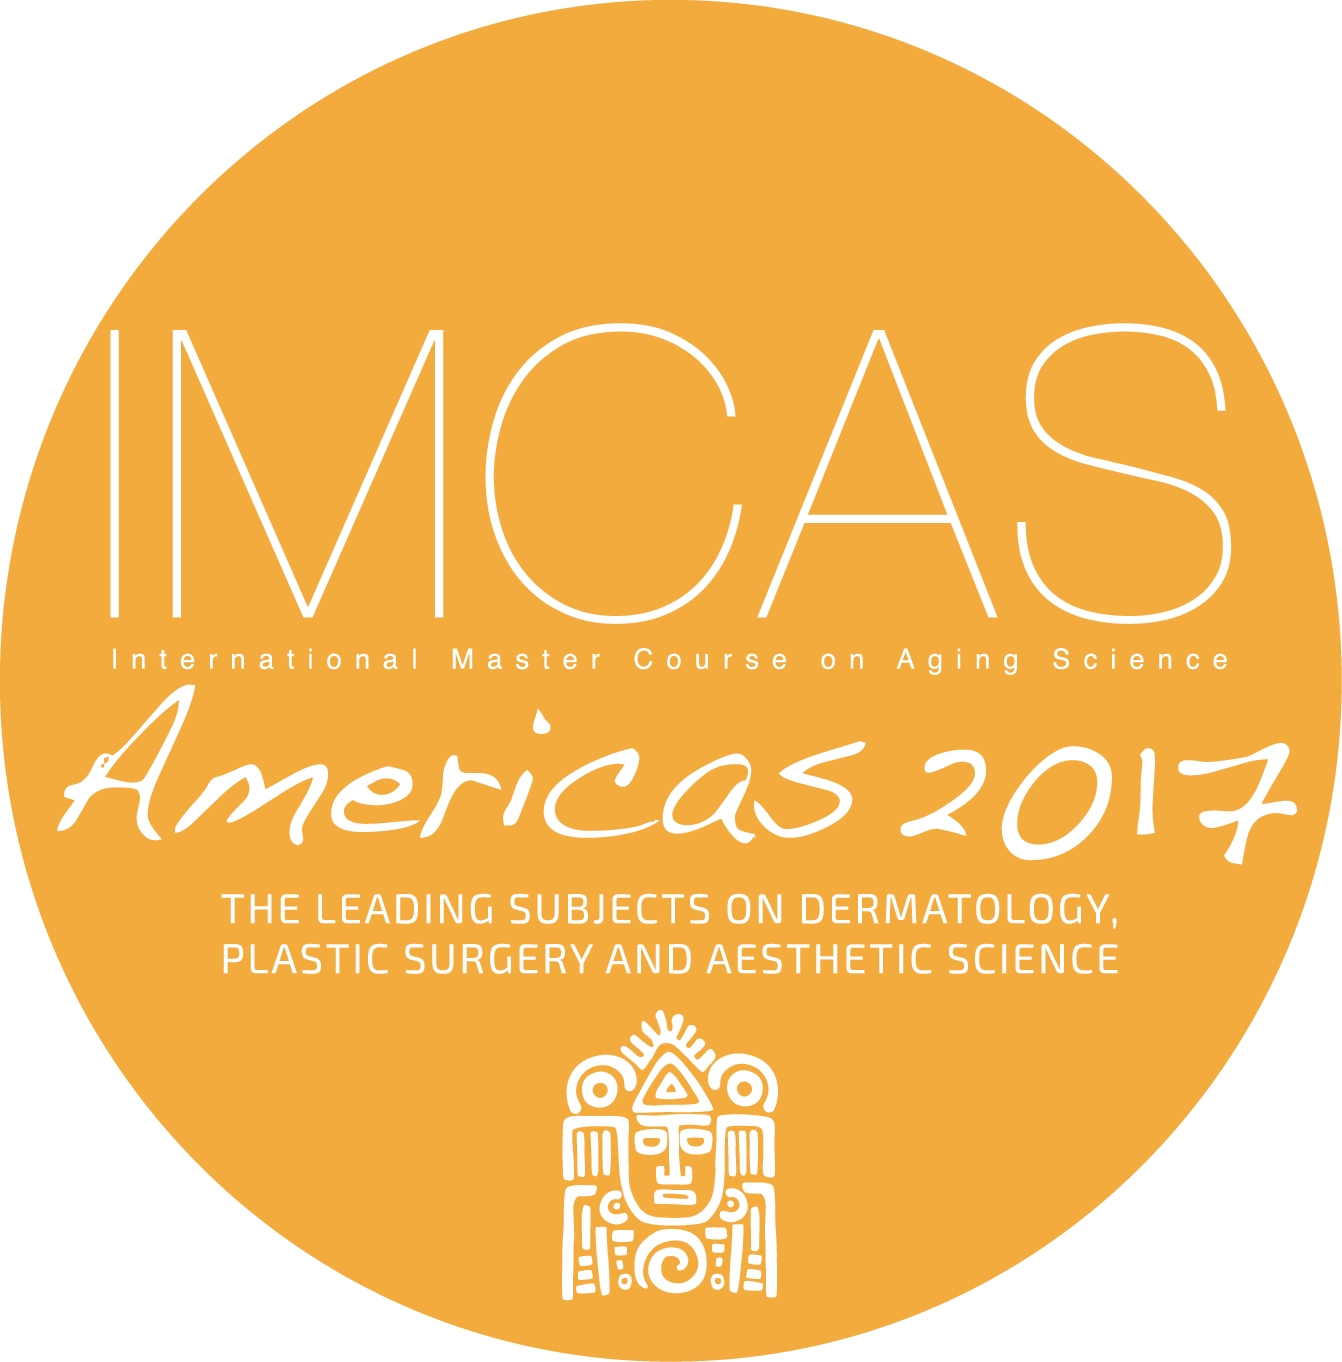 IMCAS AMERICAS Cancún, Mexico. April 24 - 26, 2017